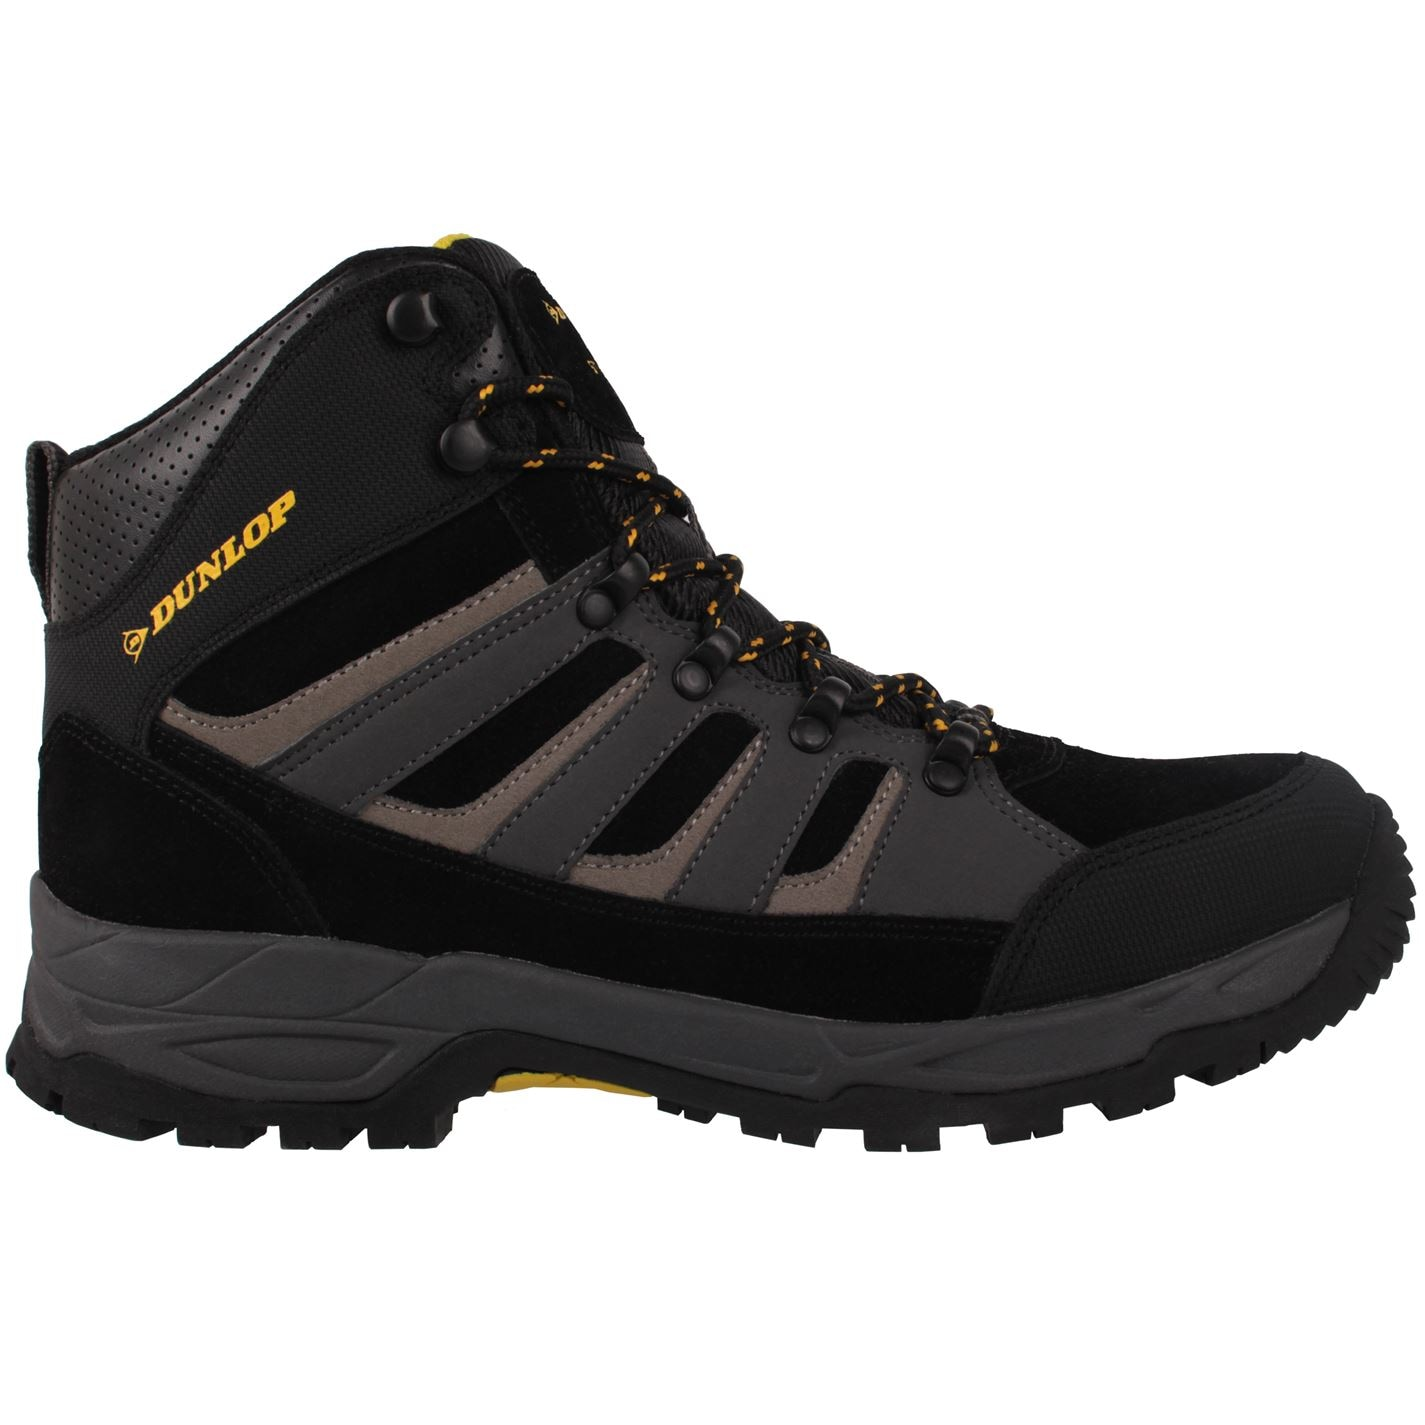 Dunlop Michigan Mens Steel Toe Cap Safety Boots Black/Charcoal